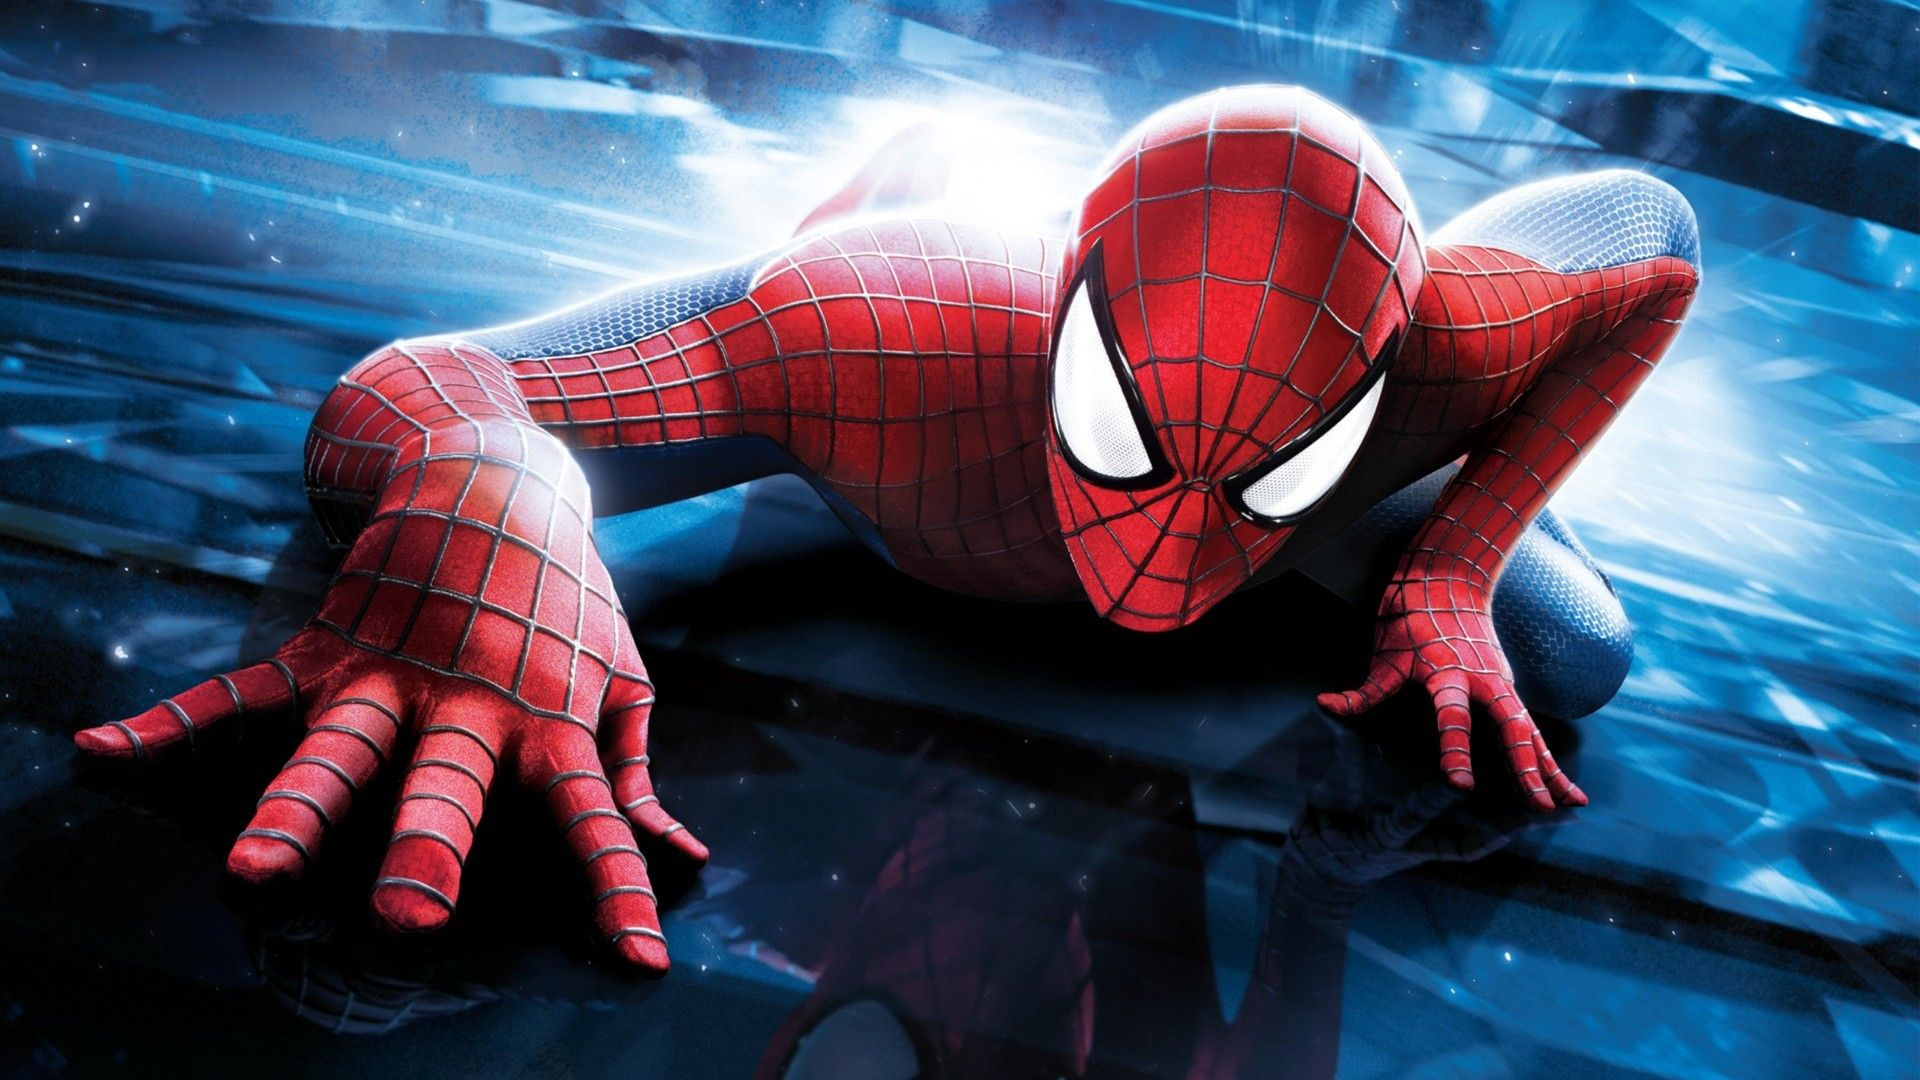 Spider Man Laptop Wallpapers Top Free Spider Man Laptop